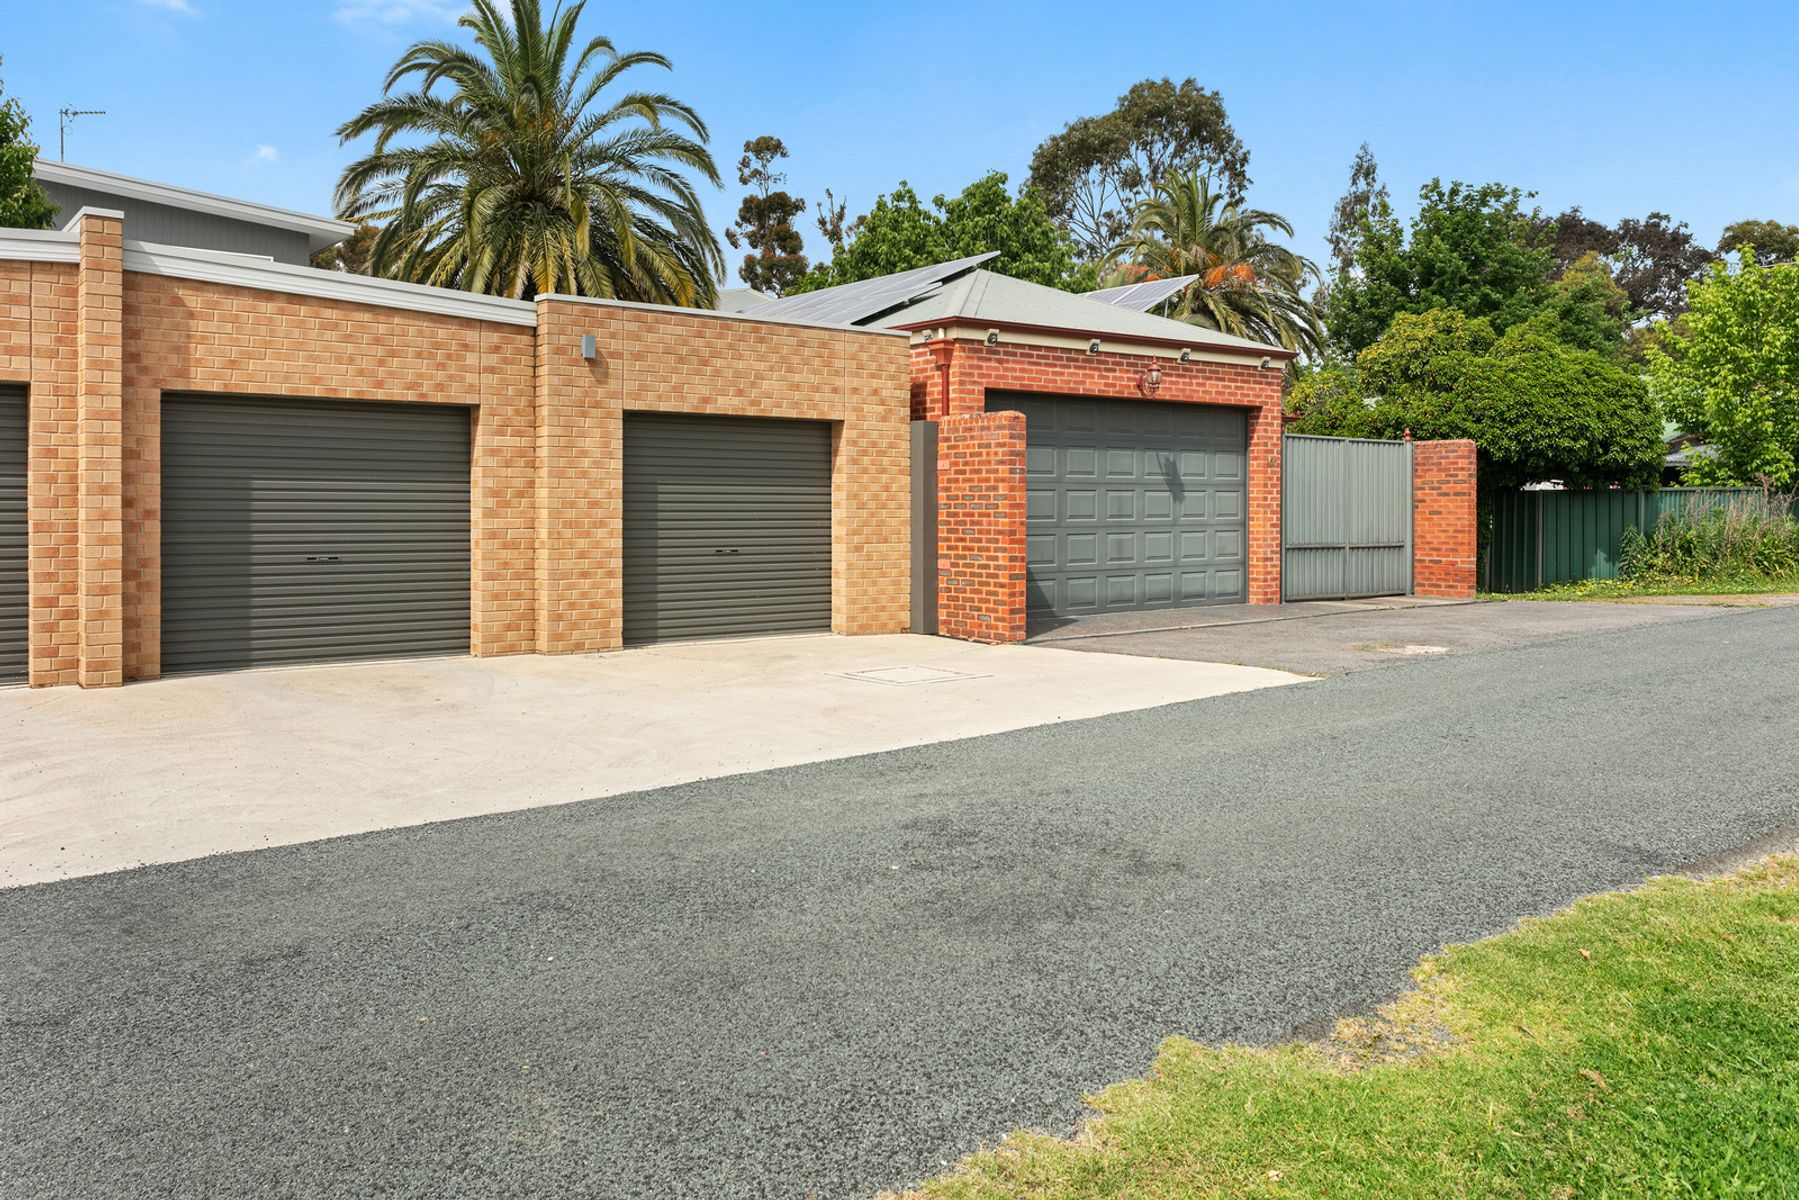 164B Williamson Street, Bendigo, VIC 3550